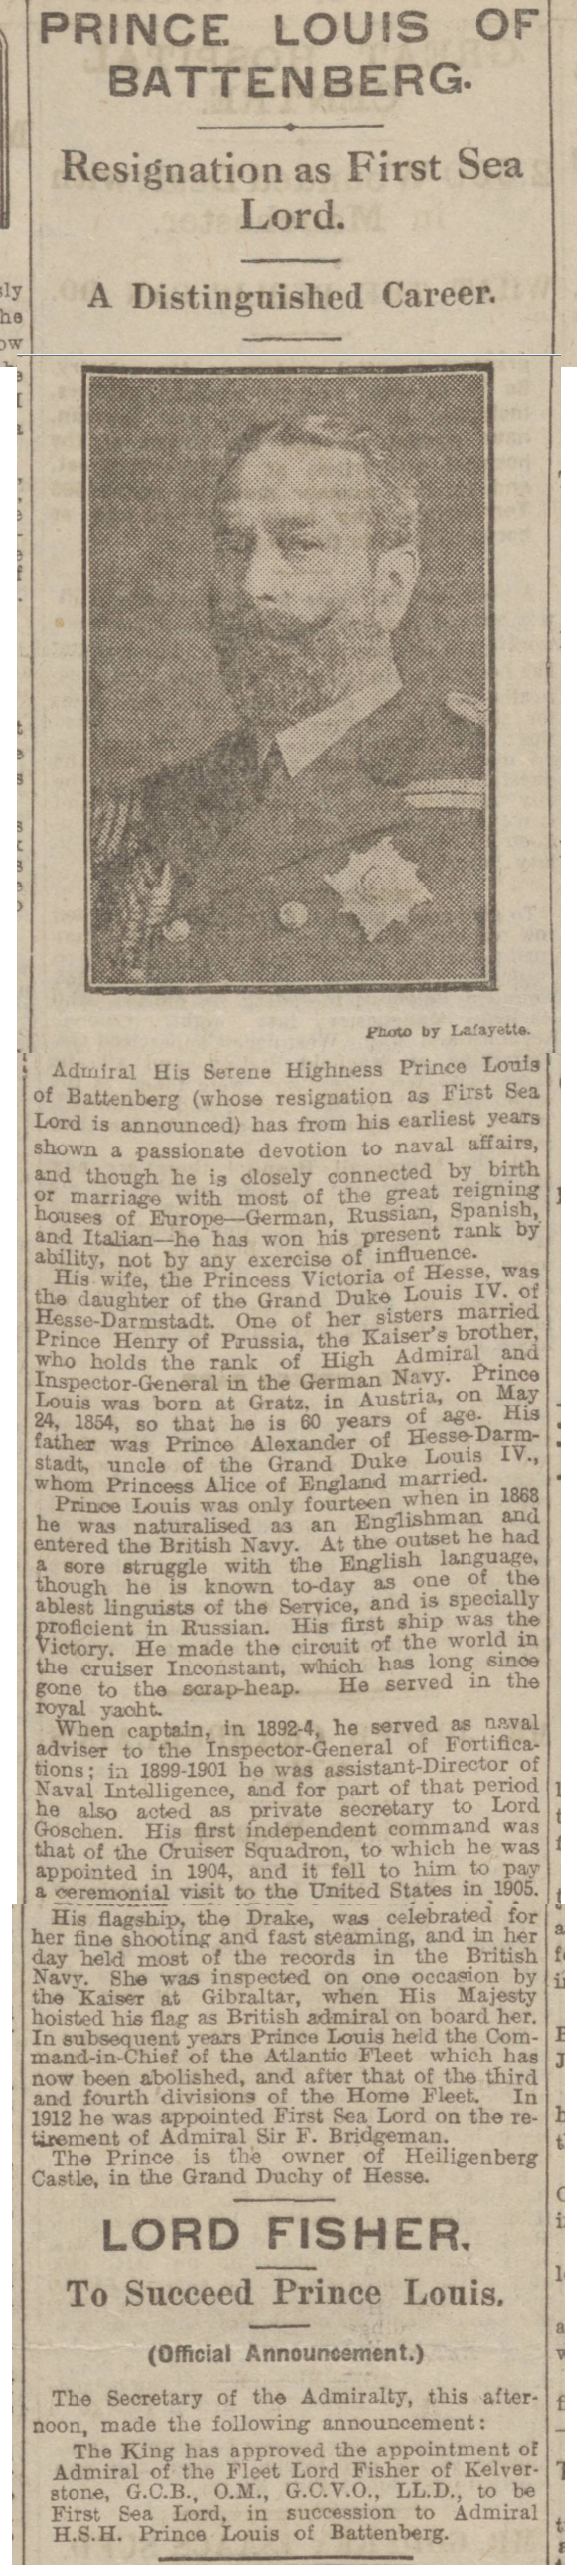 historical newspaper report about The Resignation of Prince Louis Alexander Mountbatten, First Sea Lord